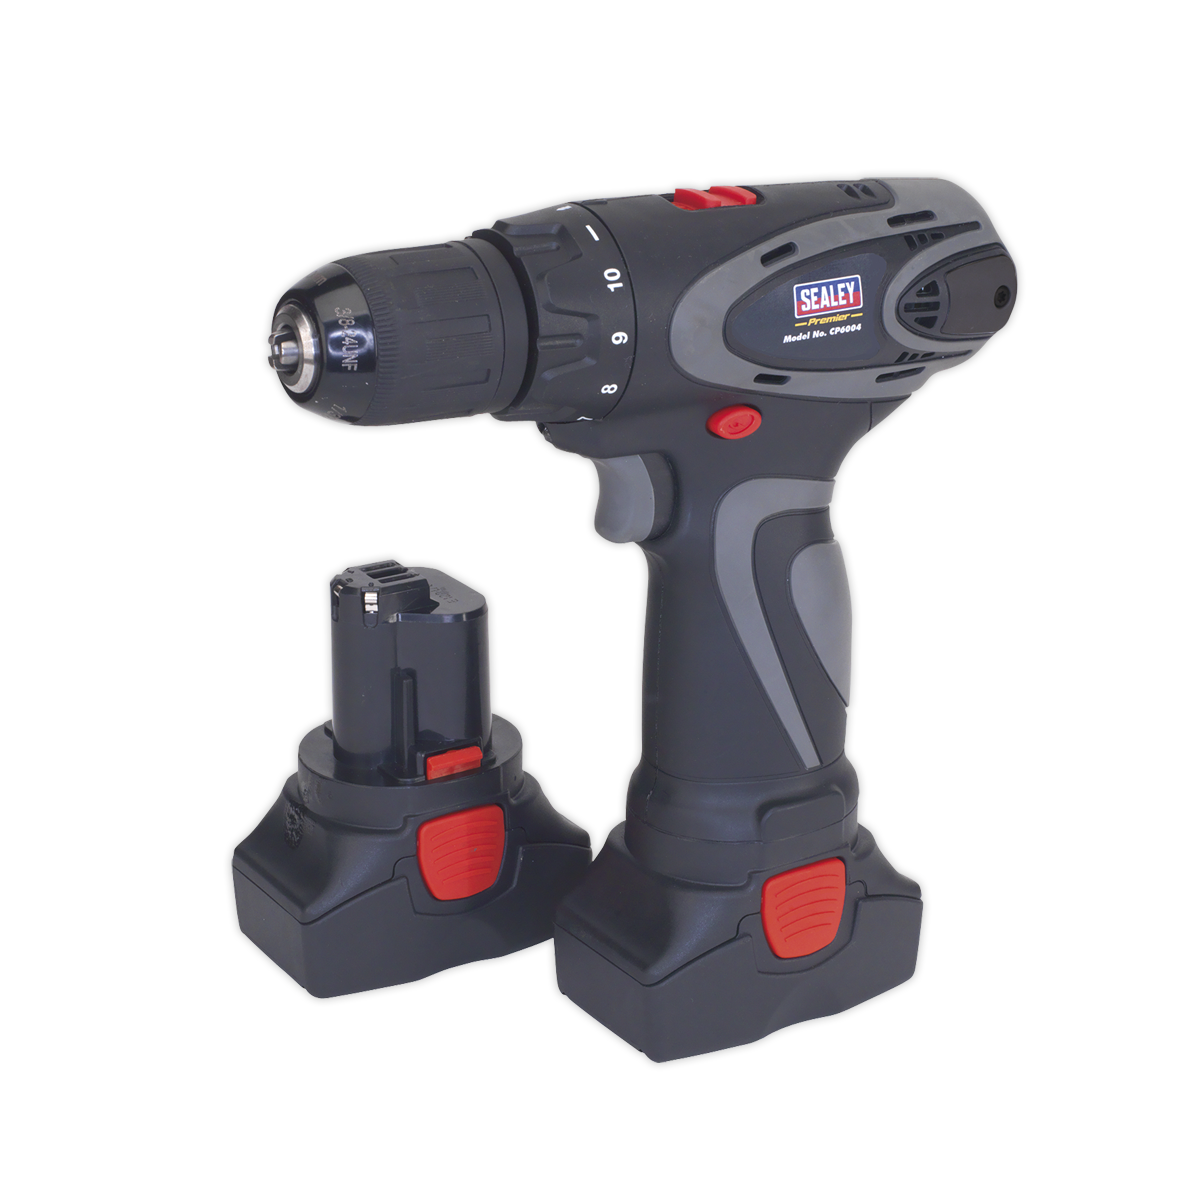 Cordless Drill/Driver ?10mm 14.4V 2Ah Lithium-ion 10mm 2-Speed Motor - 2 Batteries 40min Charger